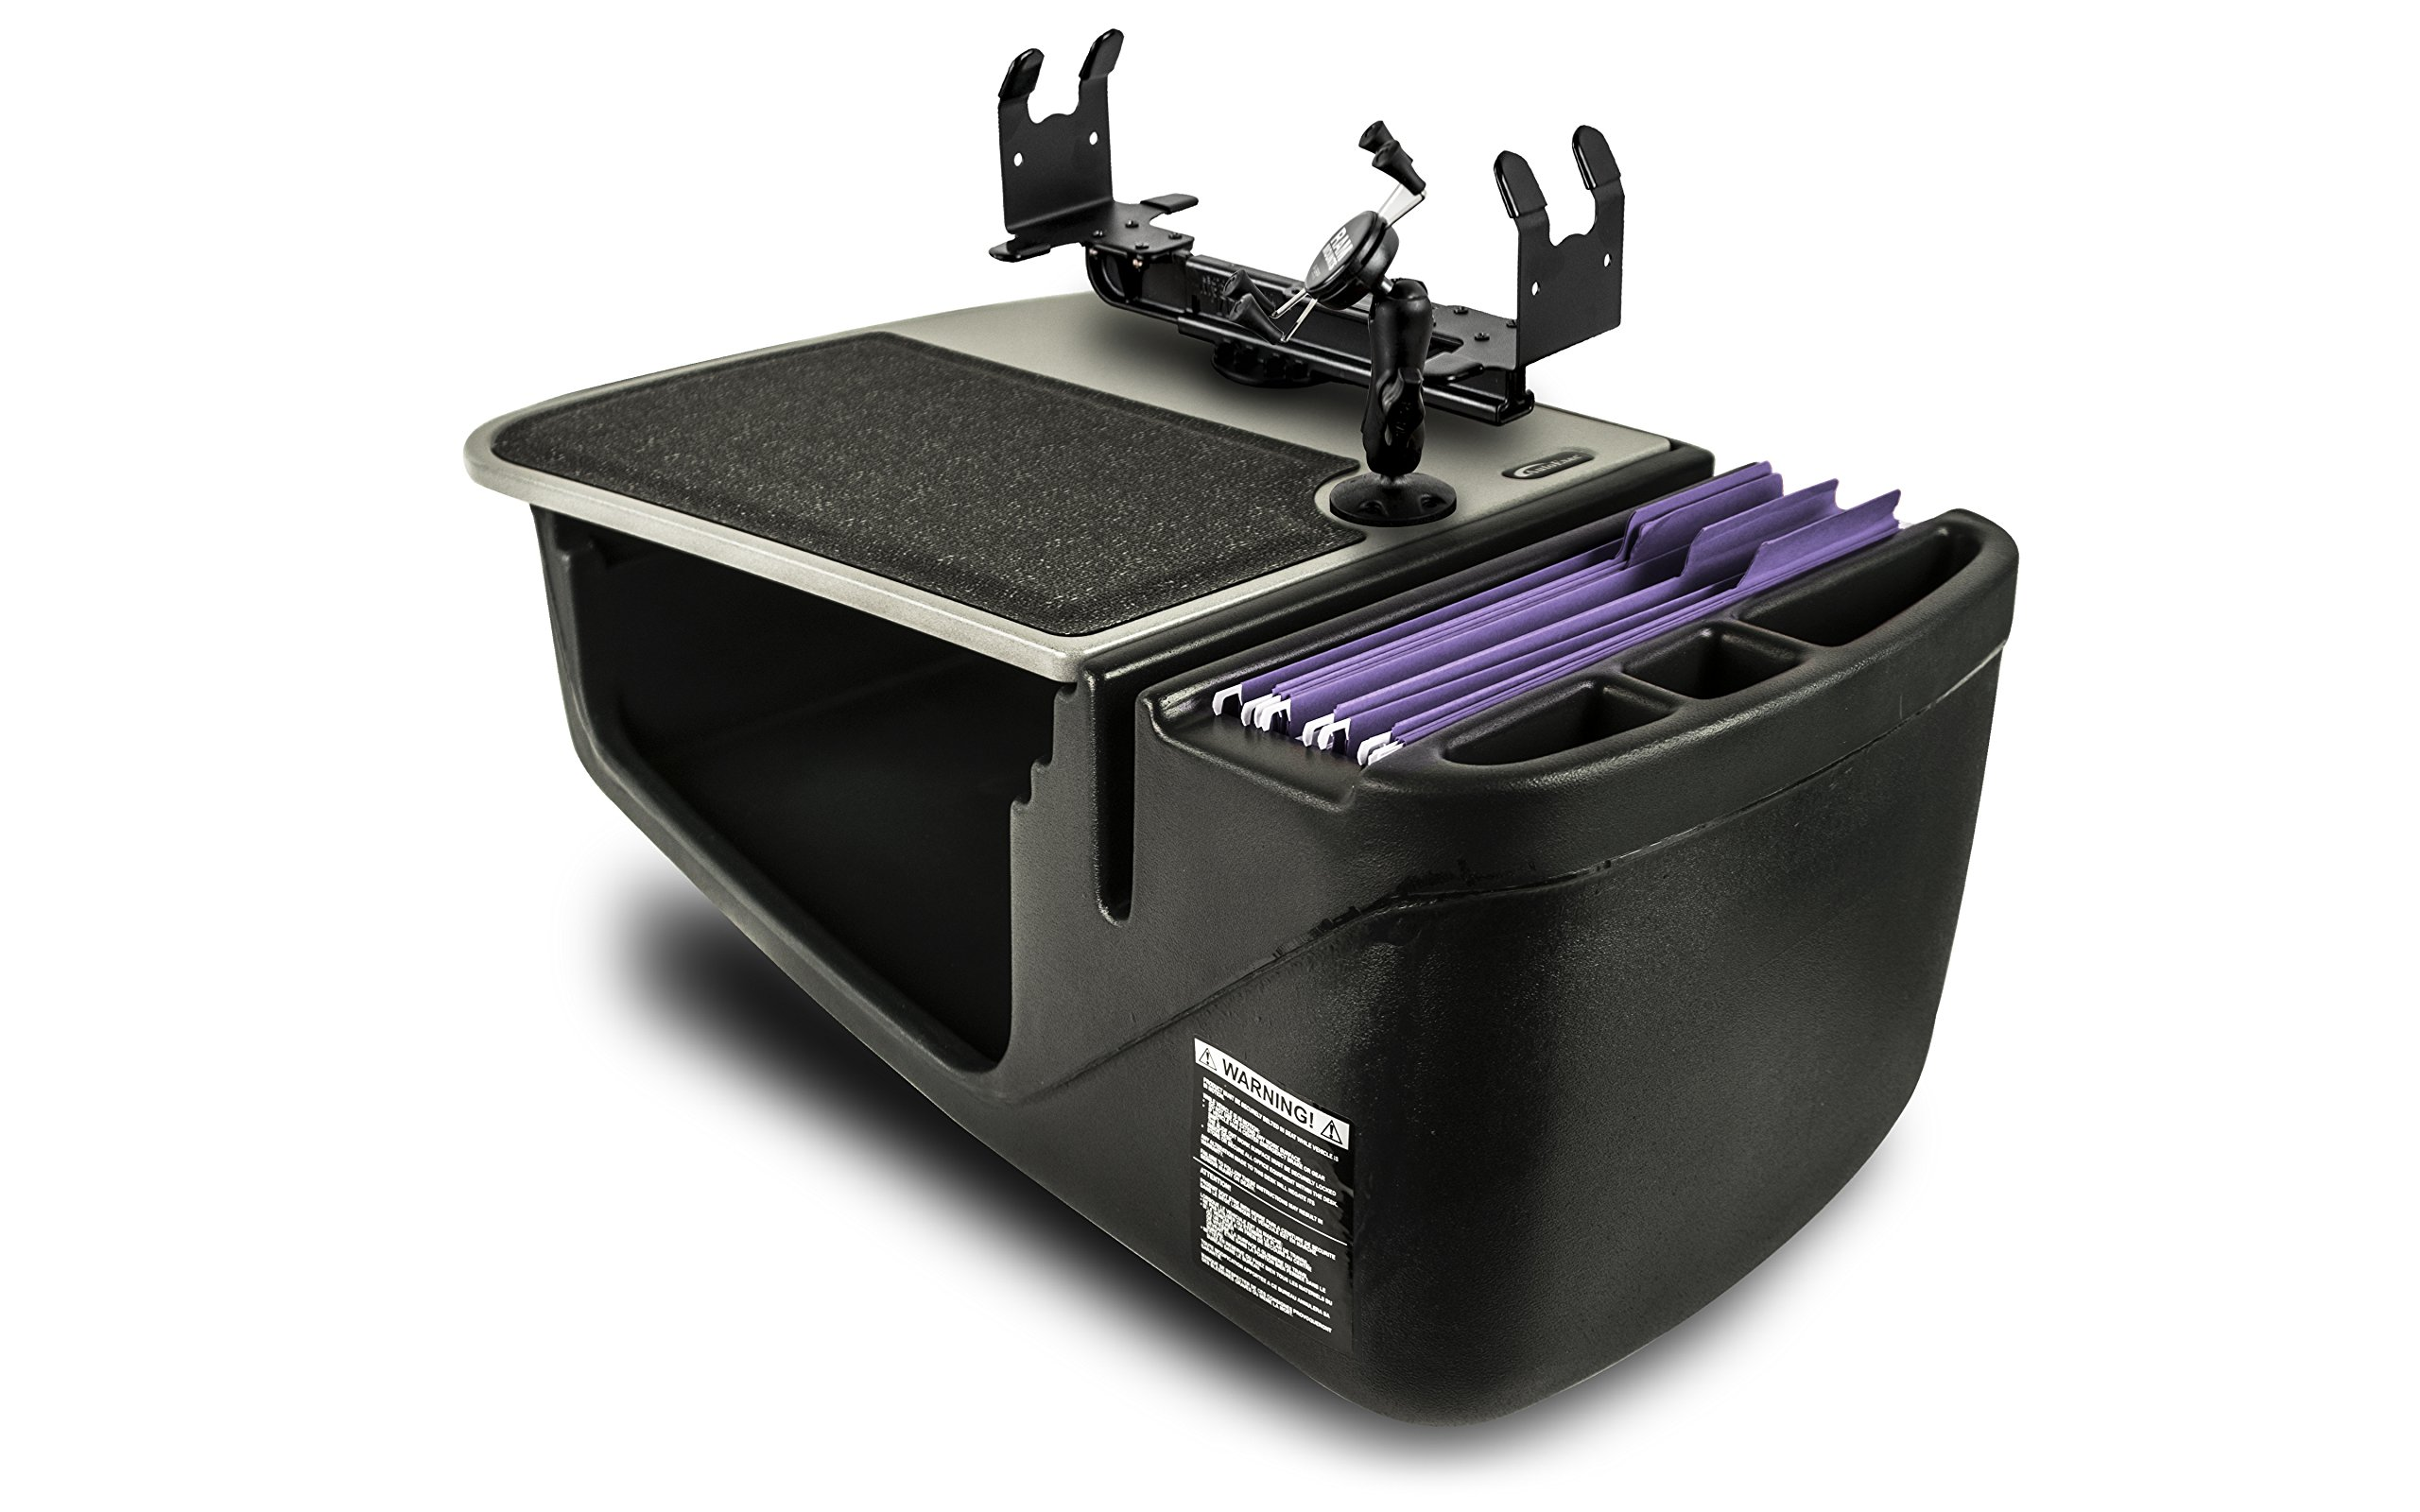 AutoExec AEGrip-02-PS-Phone Efficiency Car Desk (with Printer Stand and X-Grip Phone Mount), 1 Pack